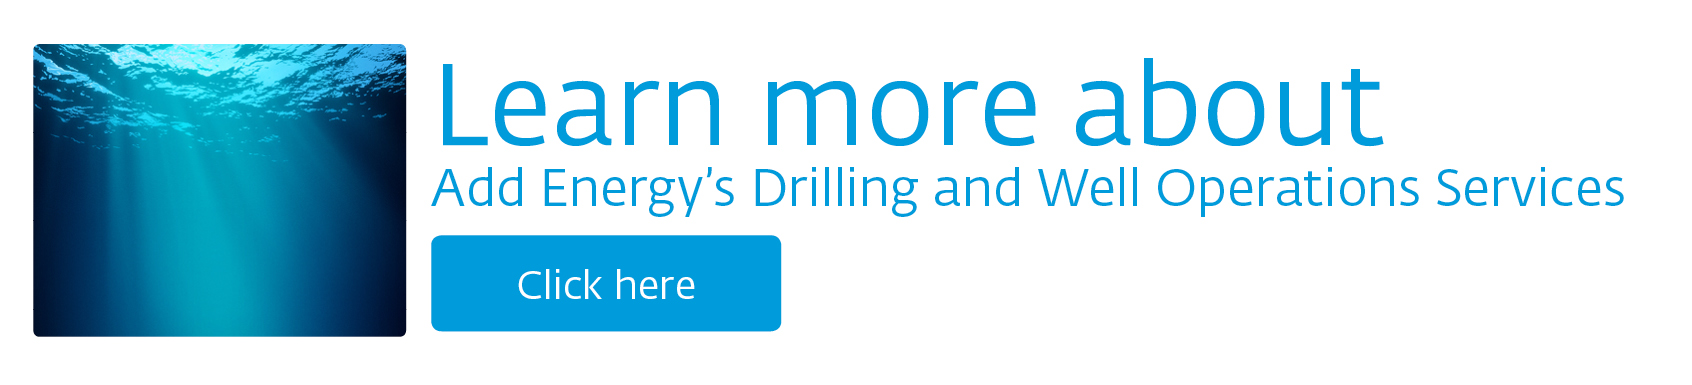 AE_Web_Button_View_Drilling_Well_Operation.jpg